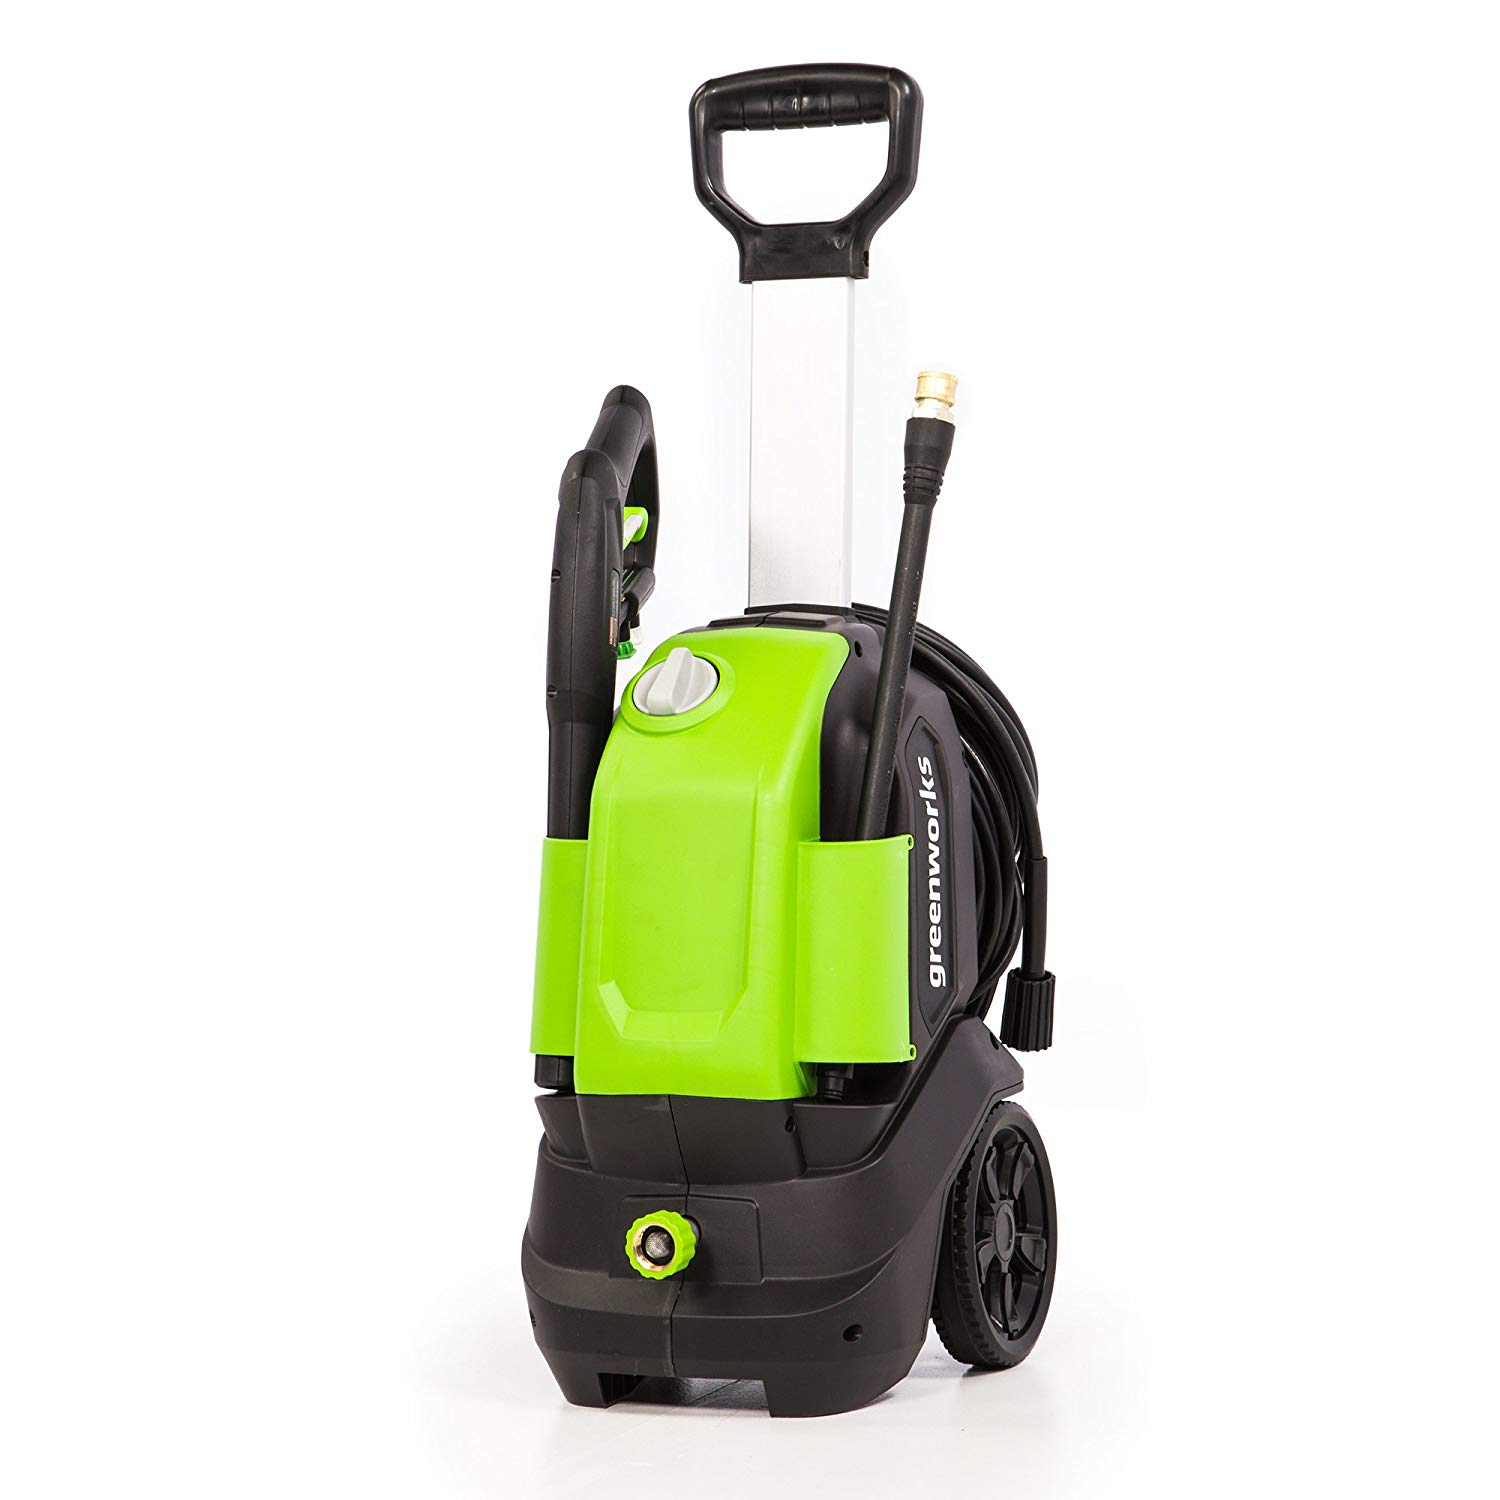 Cheap Greenworks Pressure Washer Parts, find Greenworks